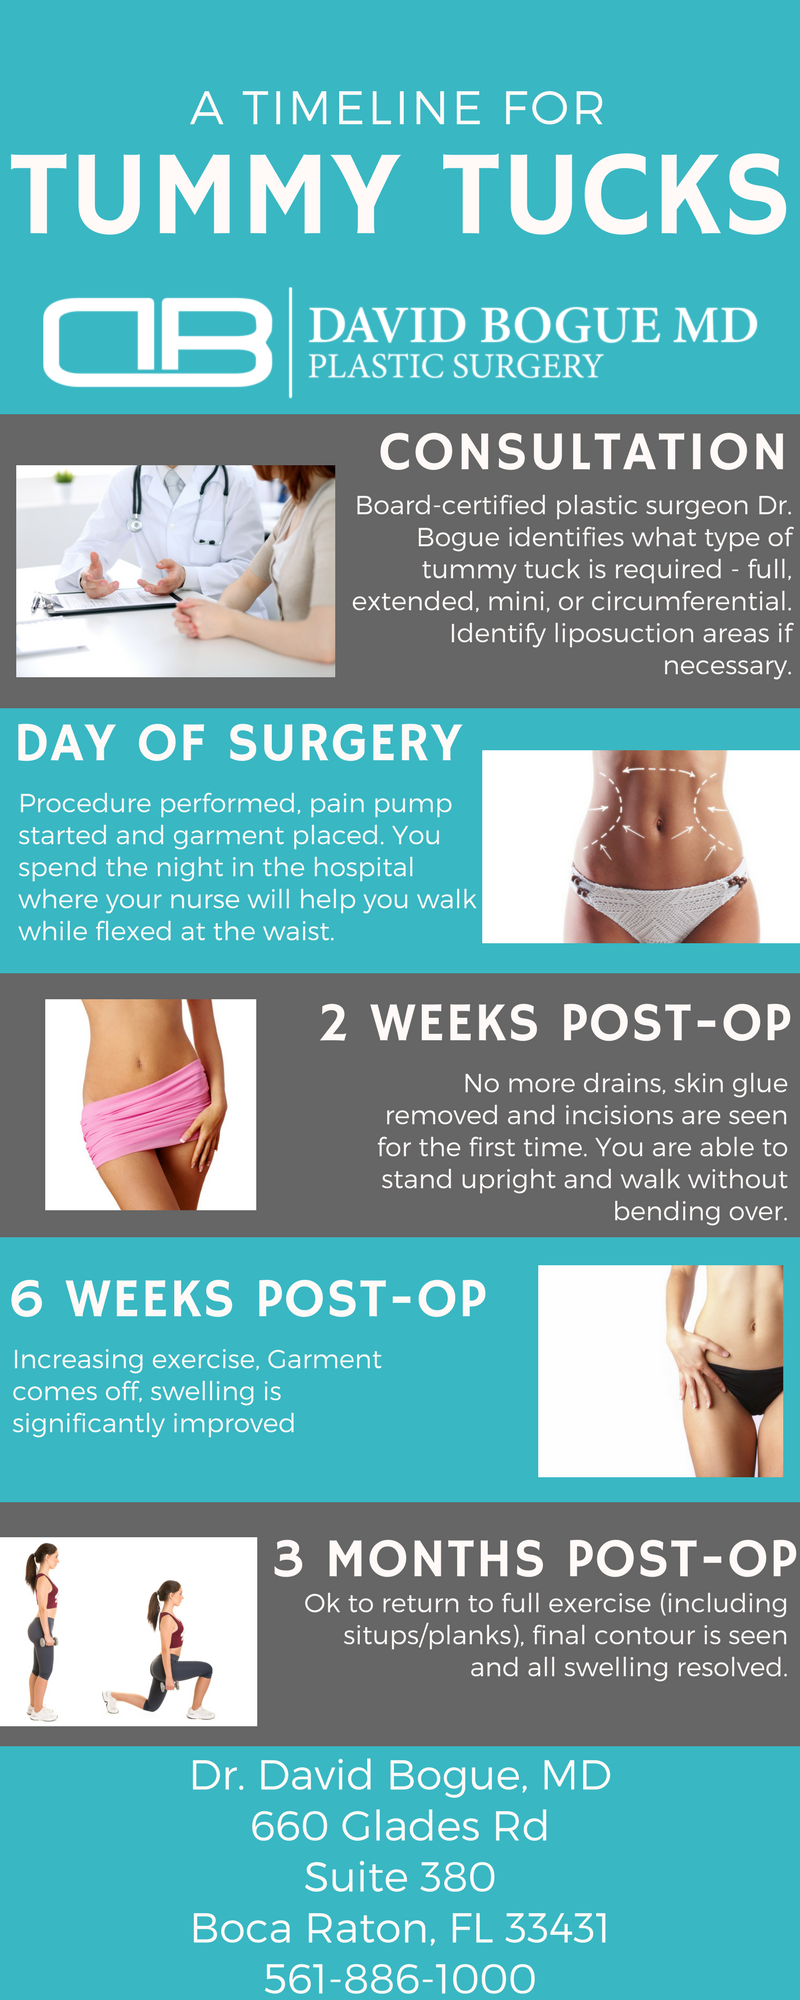 timeline for tummy tucks plastic surgery boca raton florida